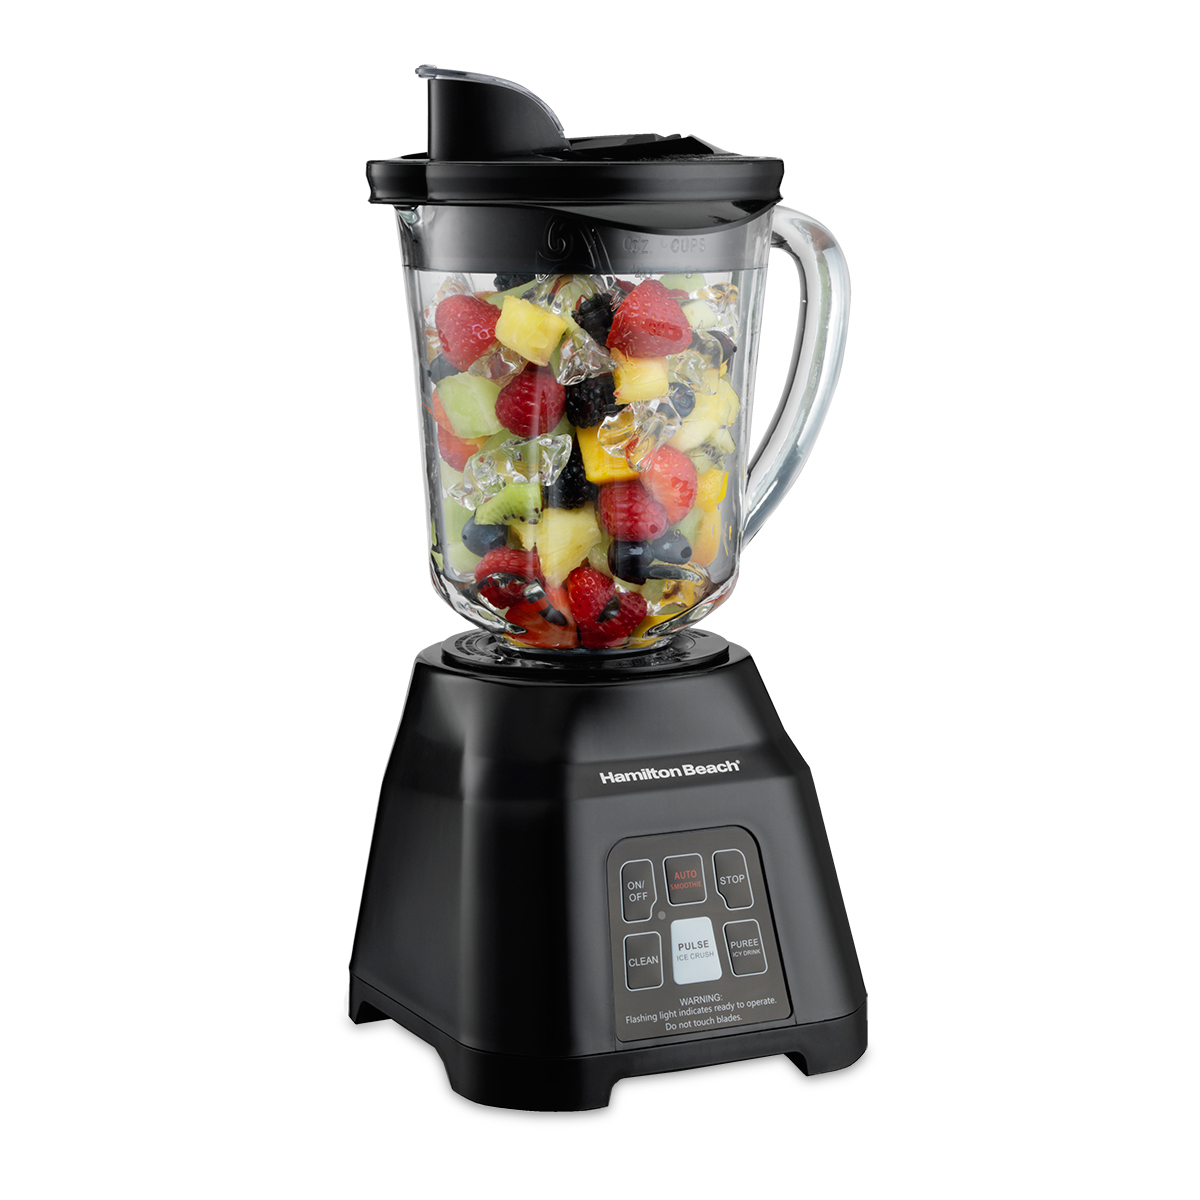 Hamilton Beach 5 Function Digital Blender 56207